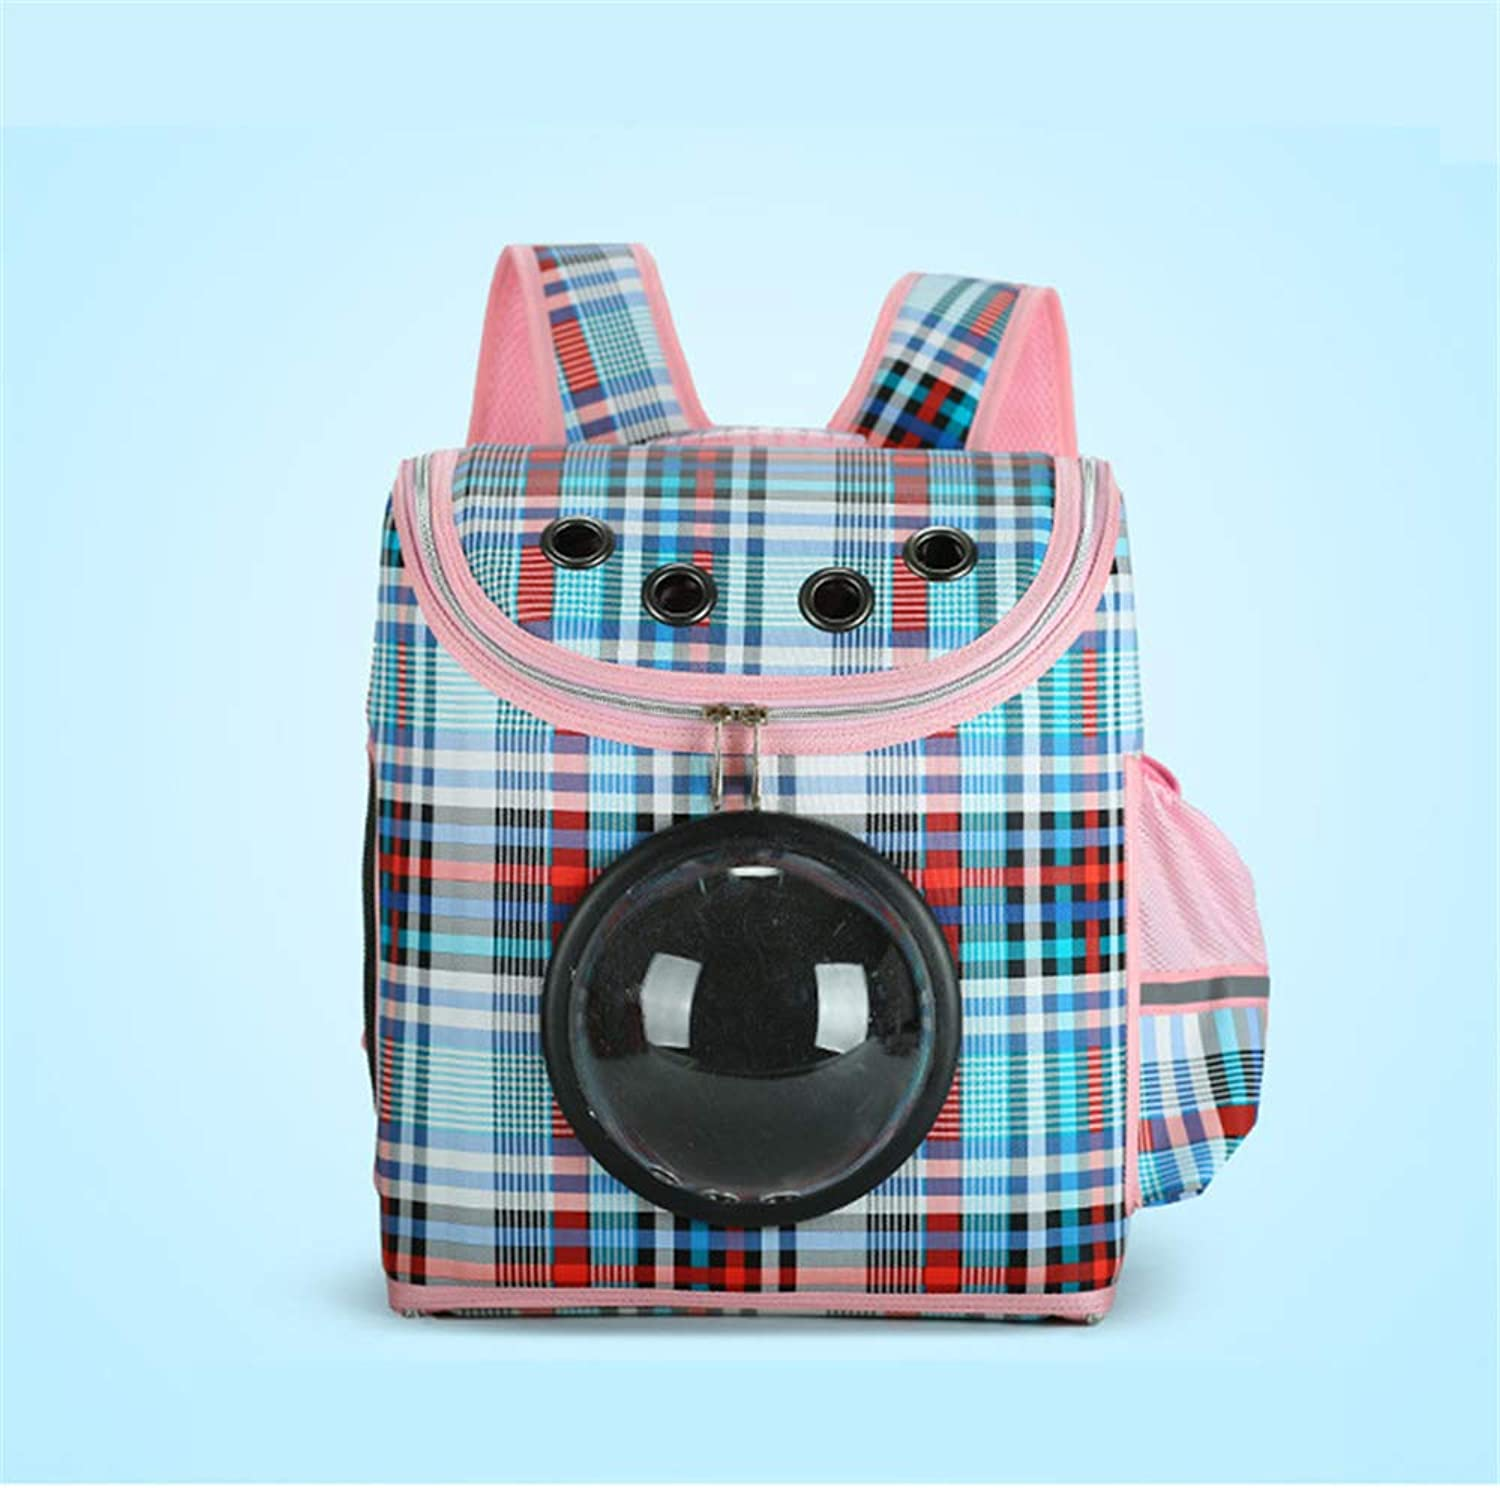 QZQWQNA Small Pet Backpack Carrier Dog Shoulder Bag Cat Puppy Mobile Bed Airplane Carrier Car Seat Travel Tote Cage Space Capsule